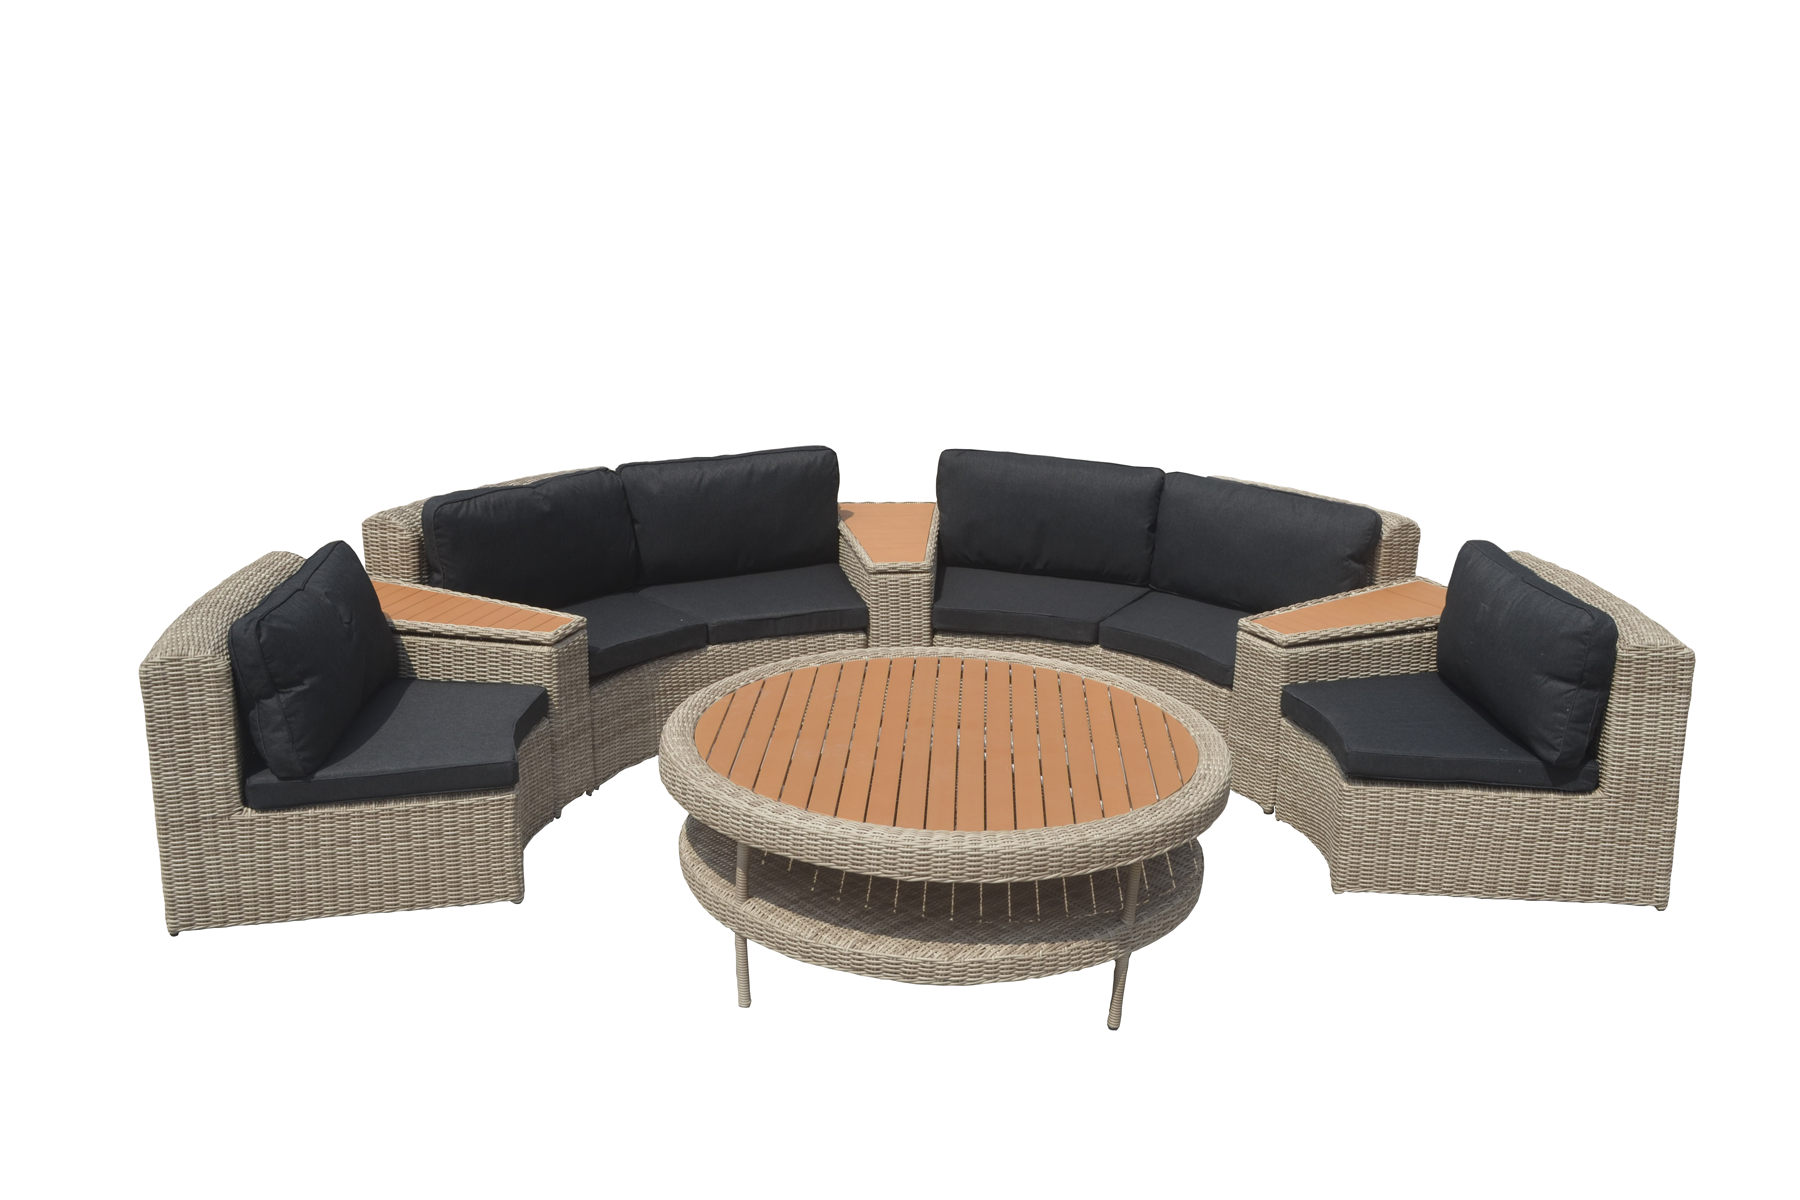 Ronde Loungeset Colorado 8 delig Lichtbruin wicker